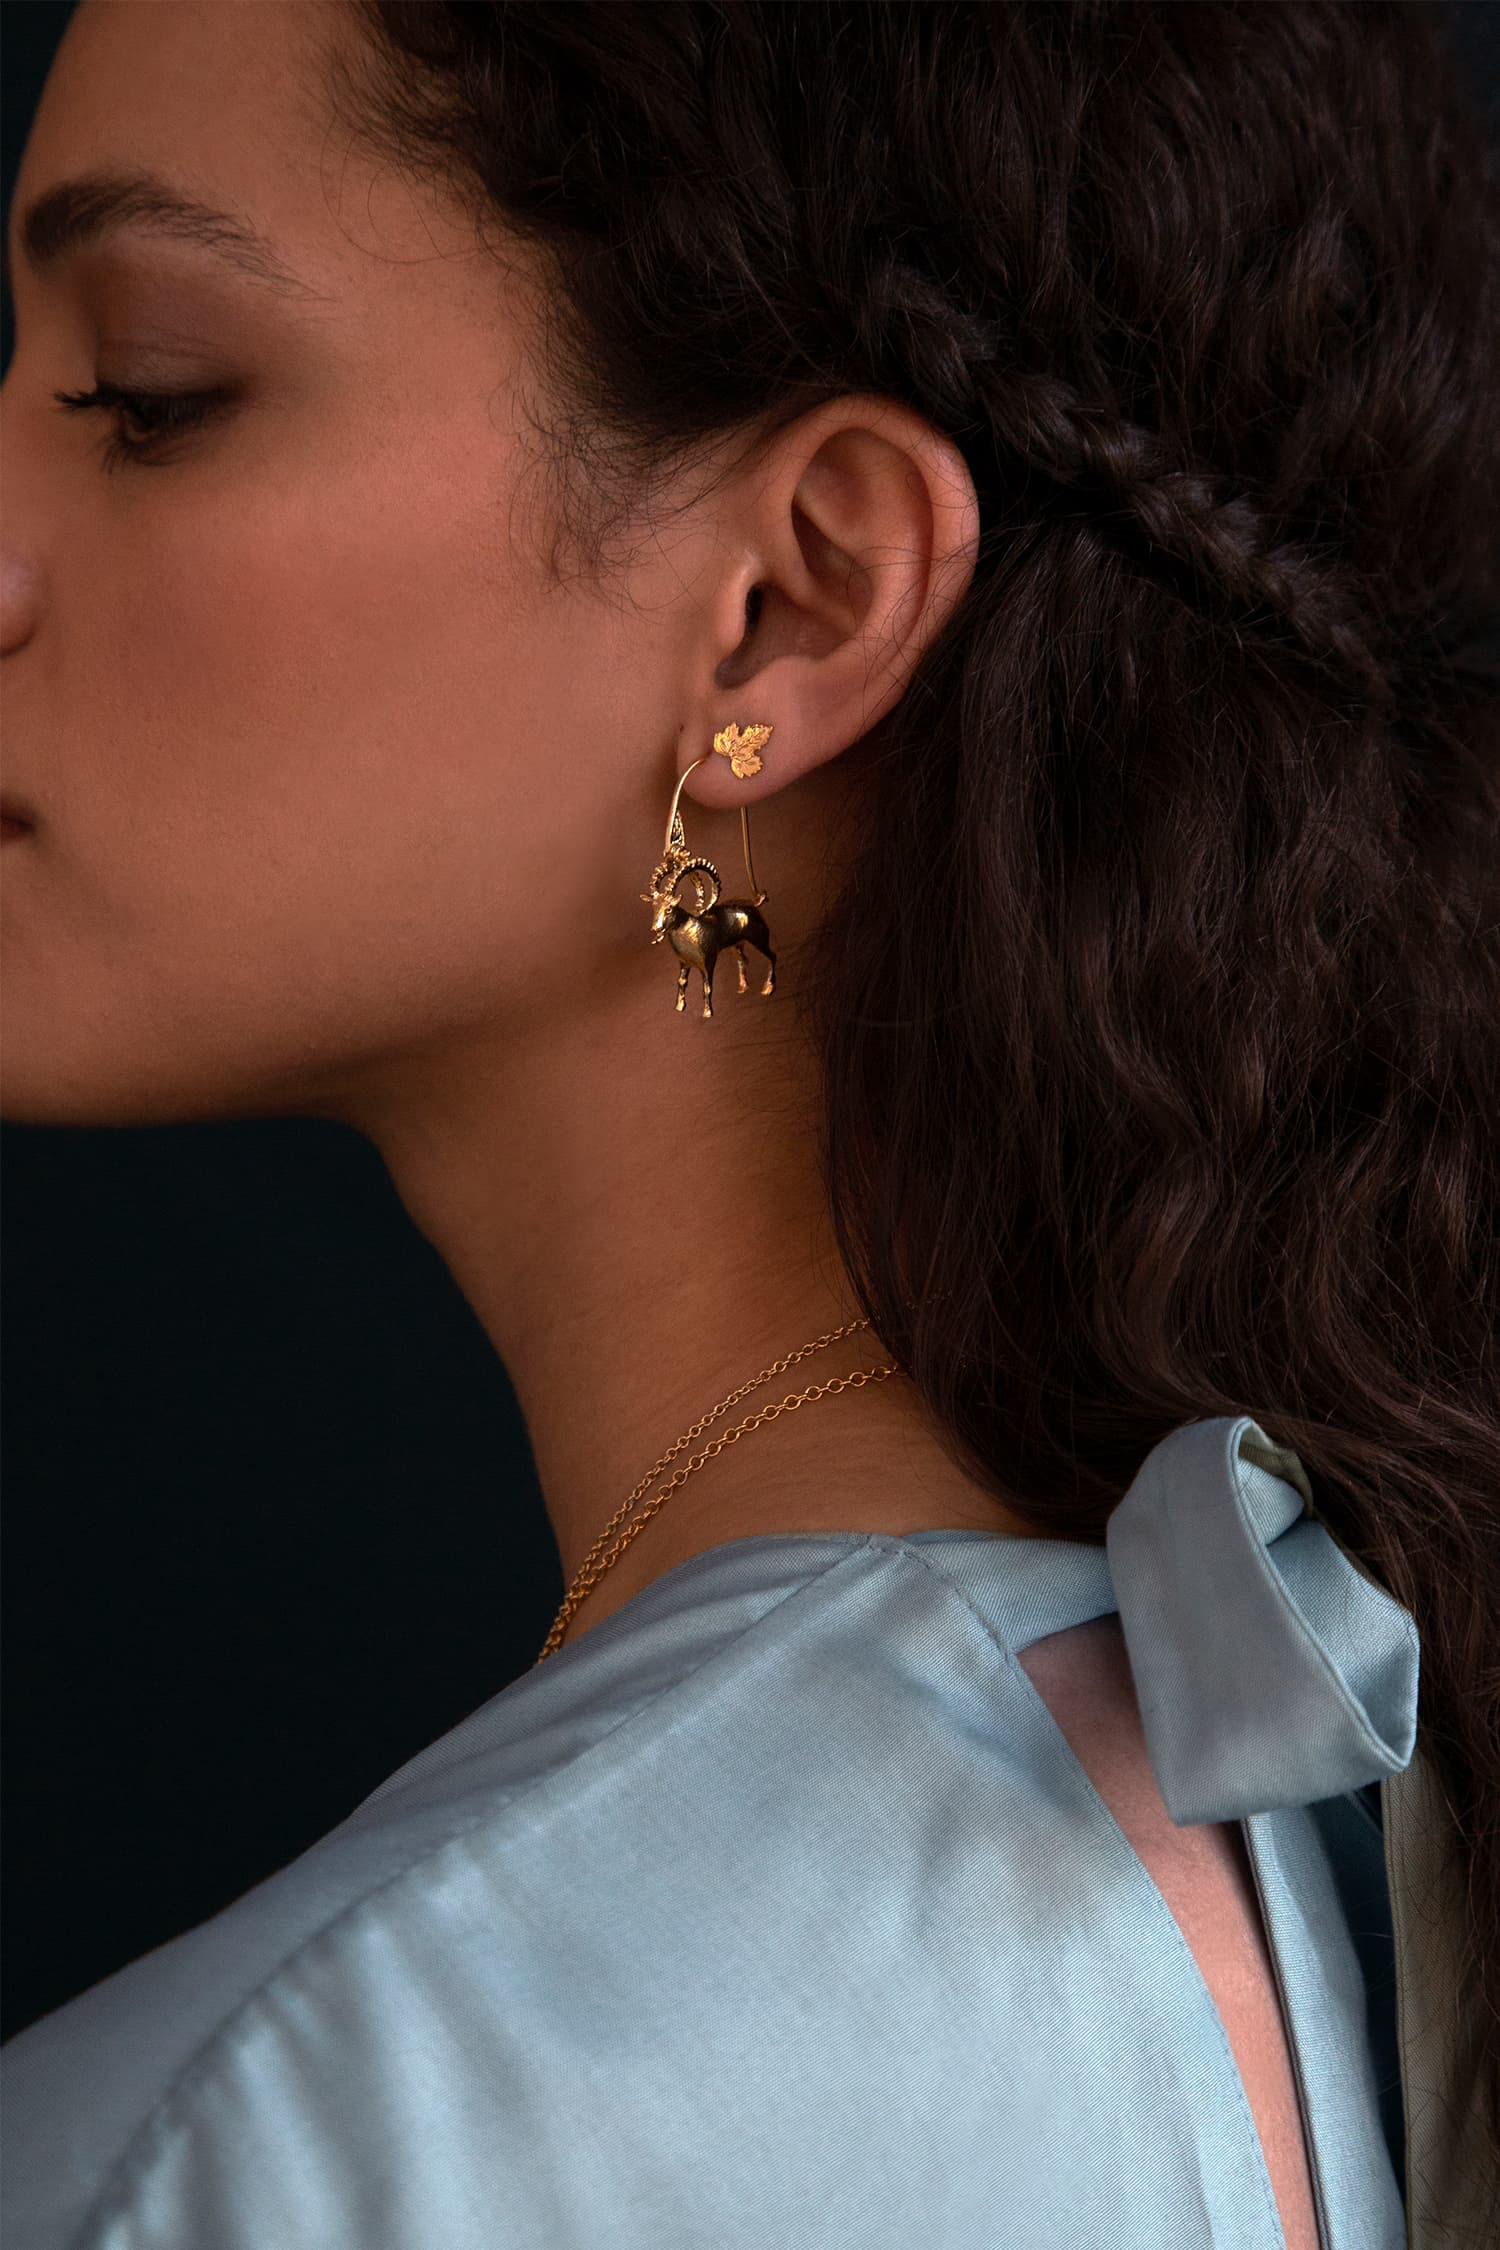 Model wears Fables Mountain Goat Creole Earrings in silver and gold plate